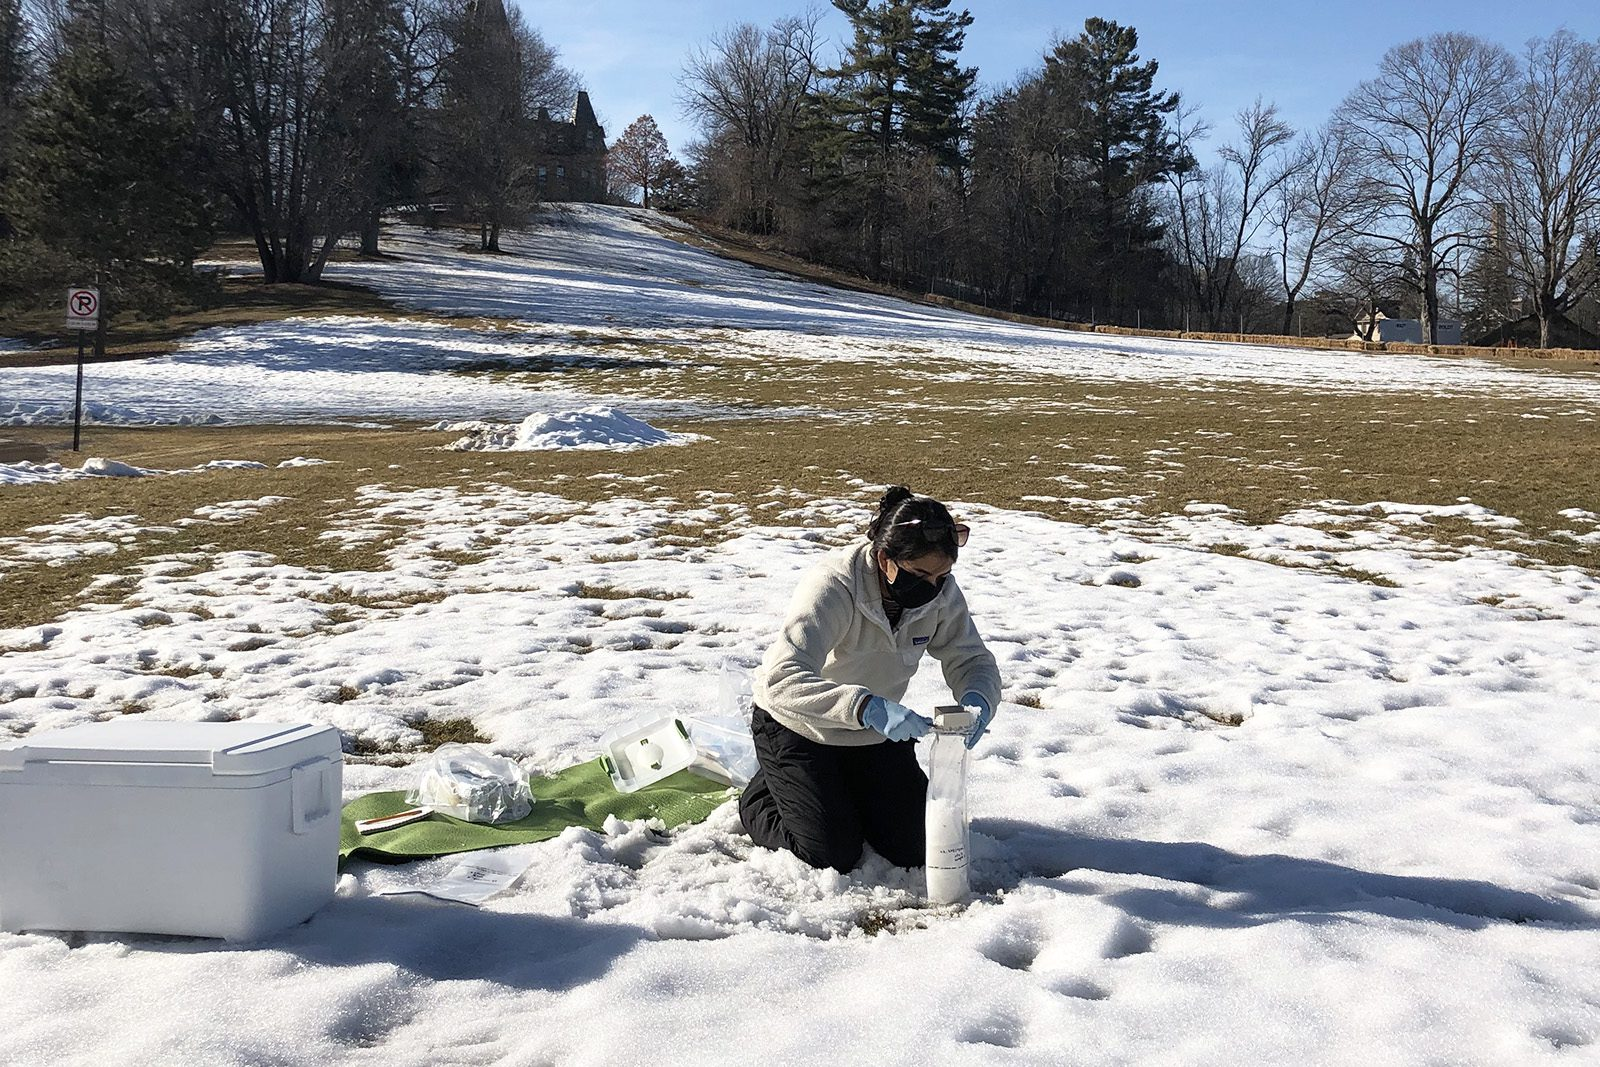 Kavya Devgun '21 collects snow samples for research near Old Main.